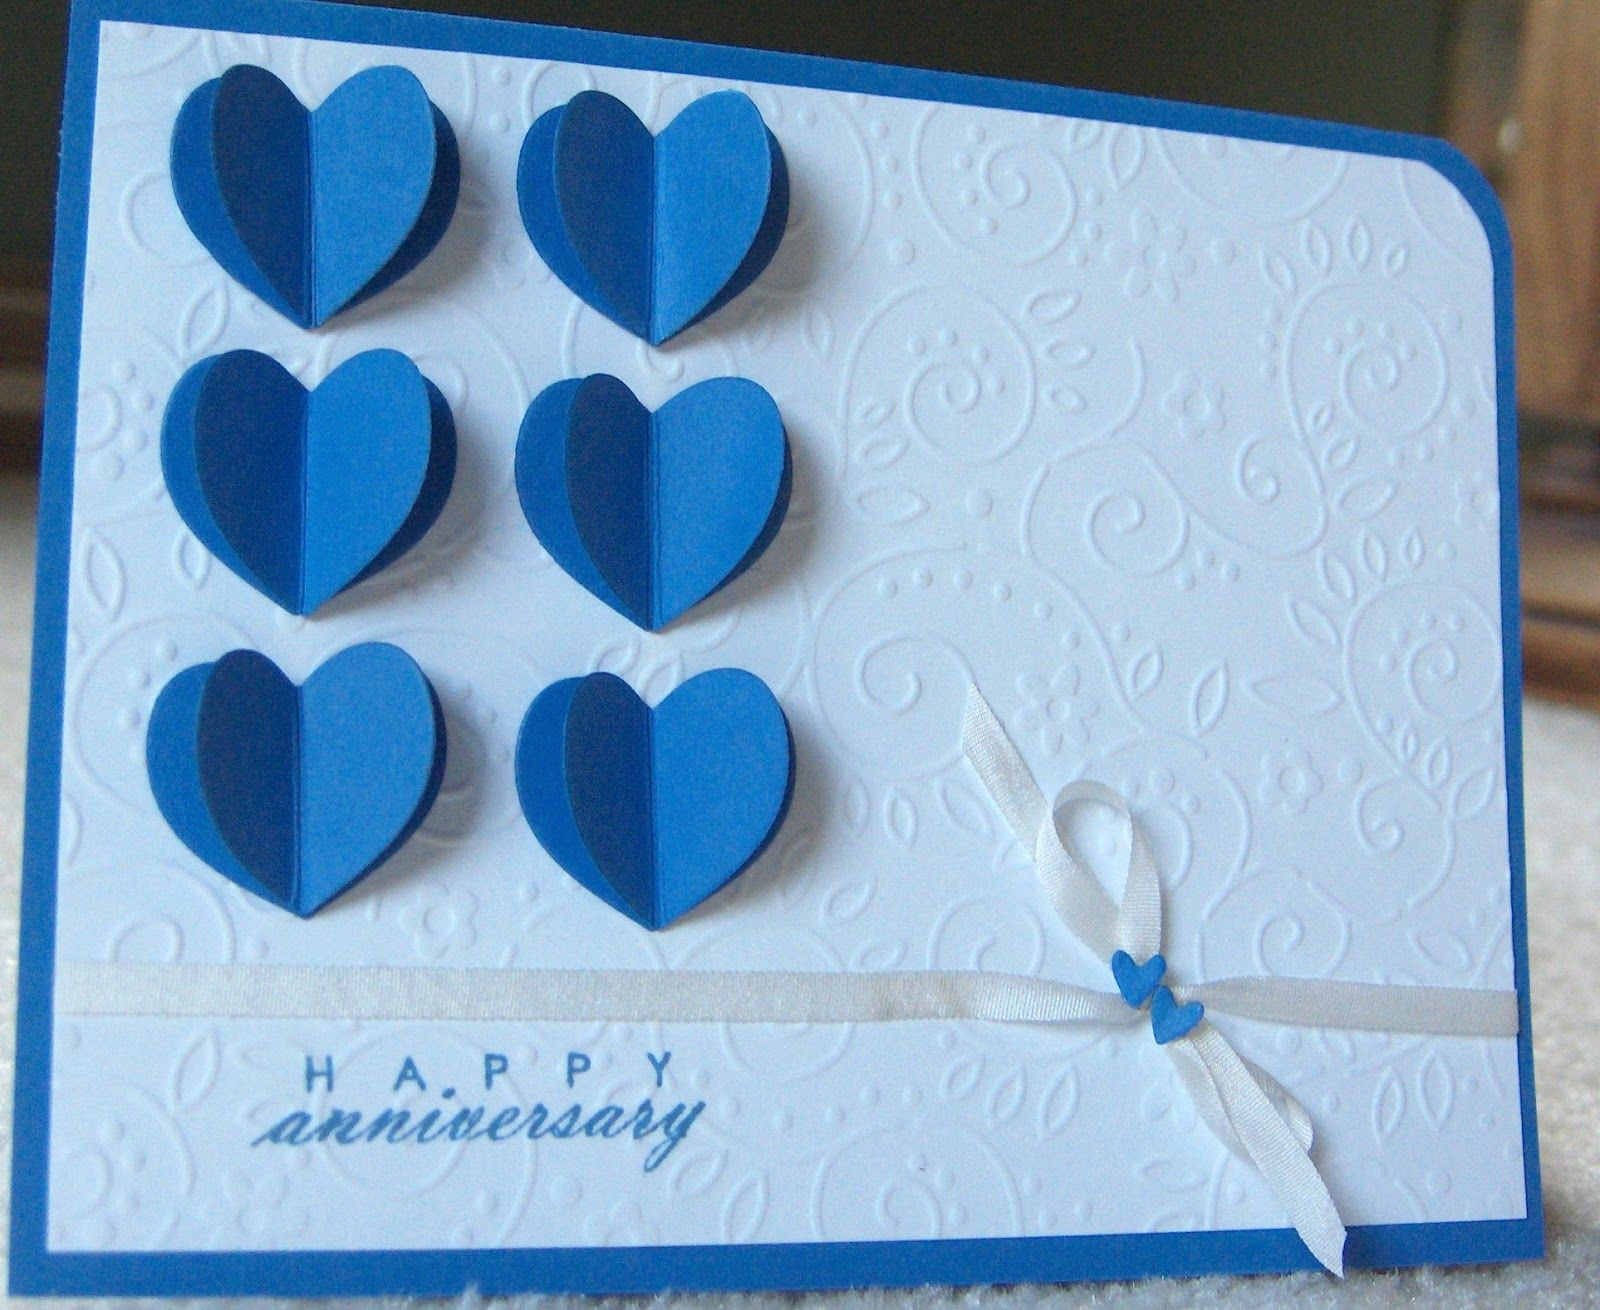 Ordinary Card Making Craft Ideas Part - 14: Anniversary Cards Ideas To Make | Wanted To Add More Texture To The Card So  I